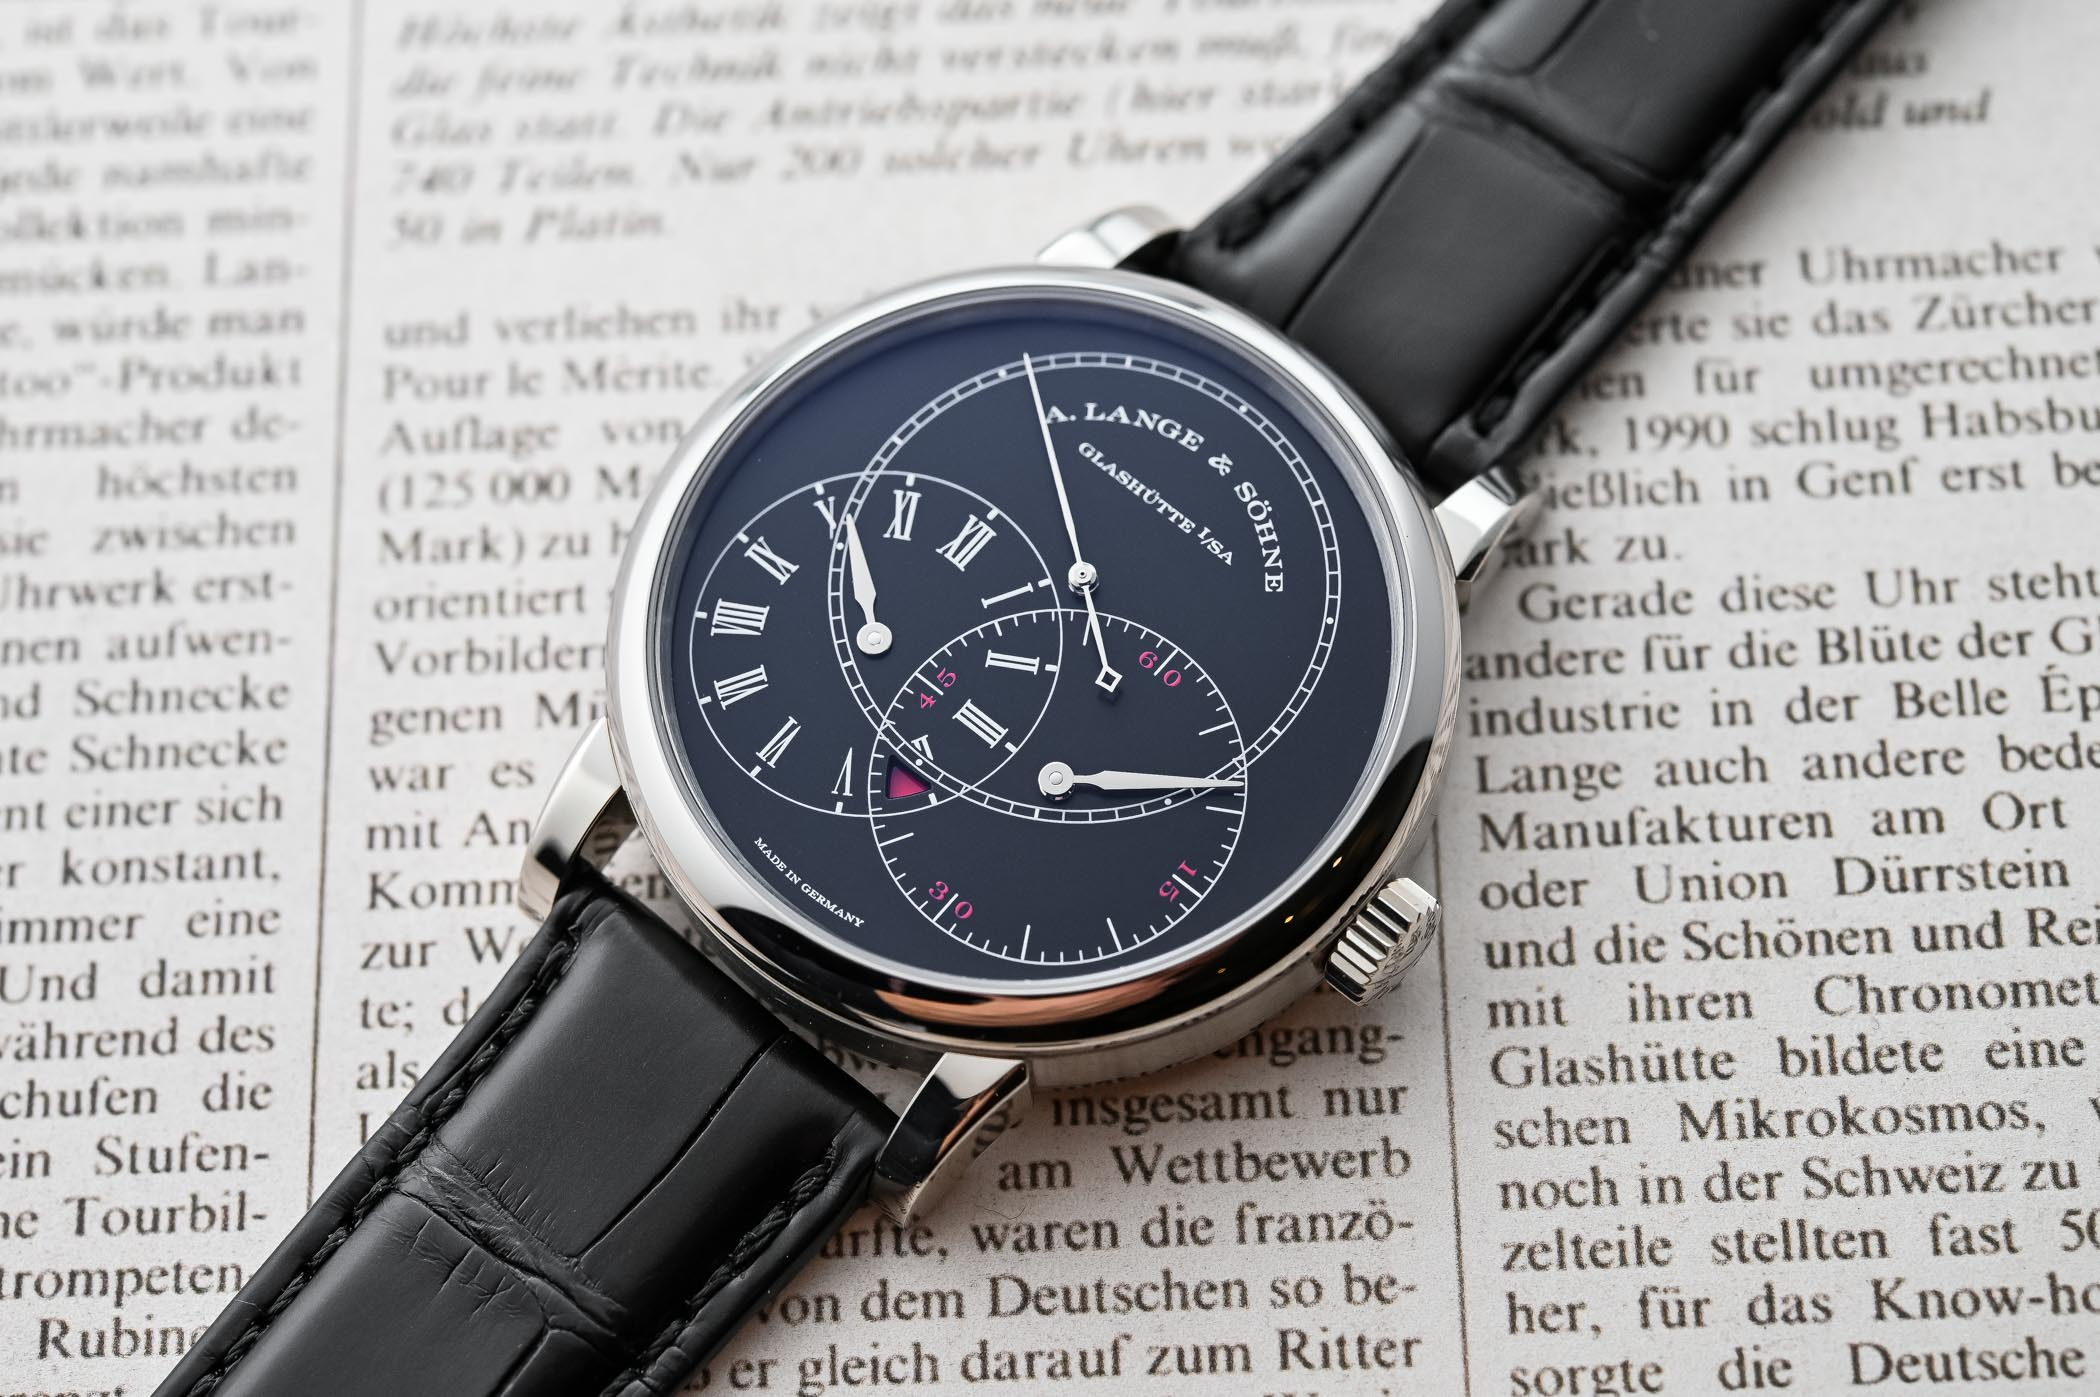 A Lange Sohne Richard Lange Jumping Seconds White Gold and Black Dial - SIHH 2019 - review - 10